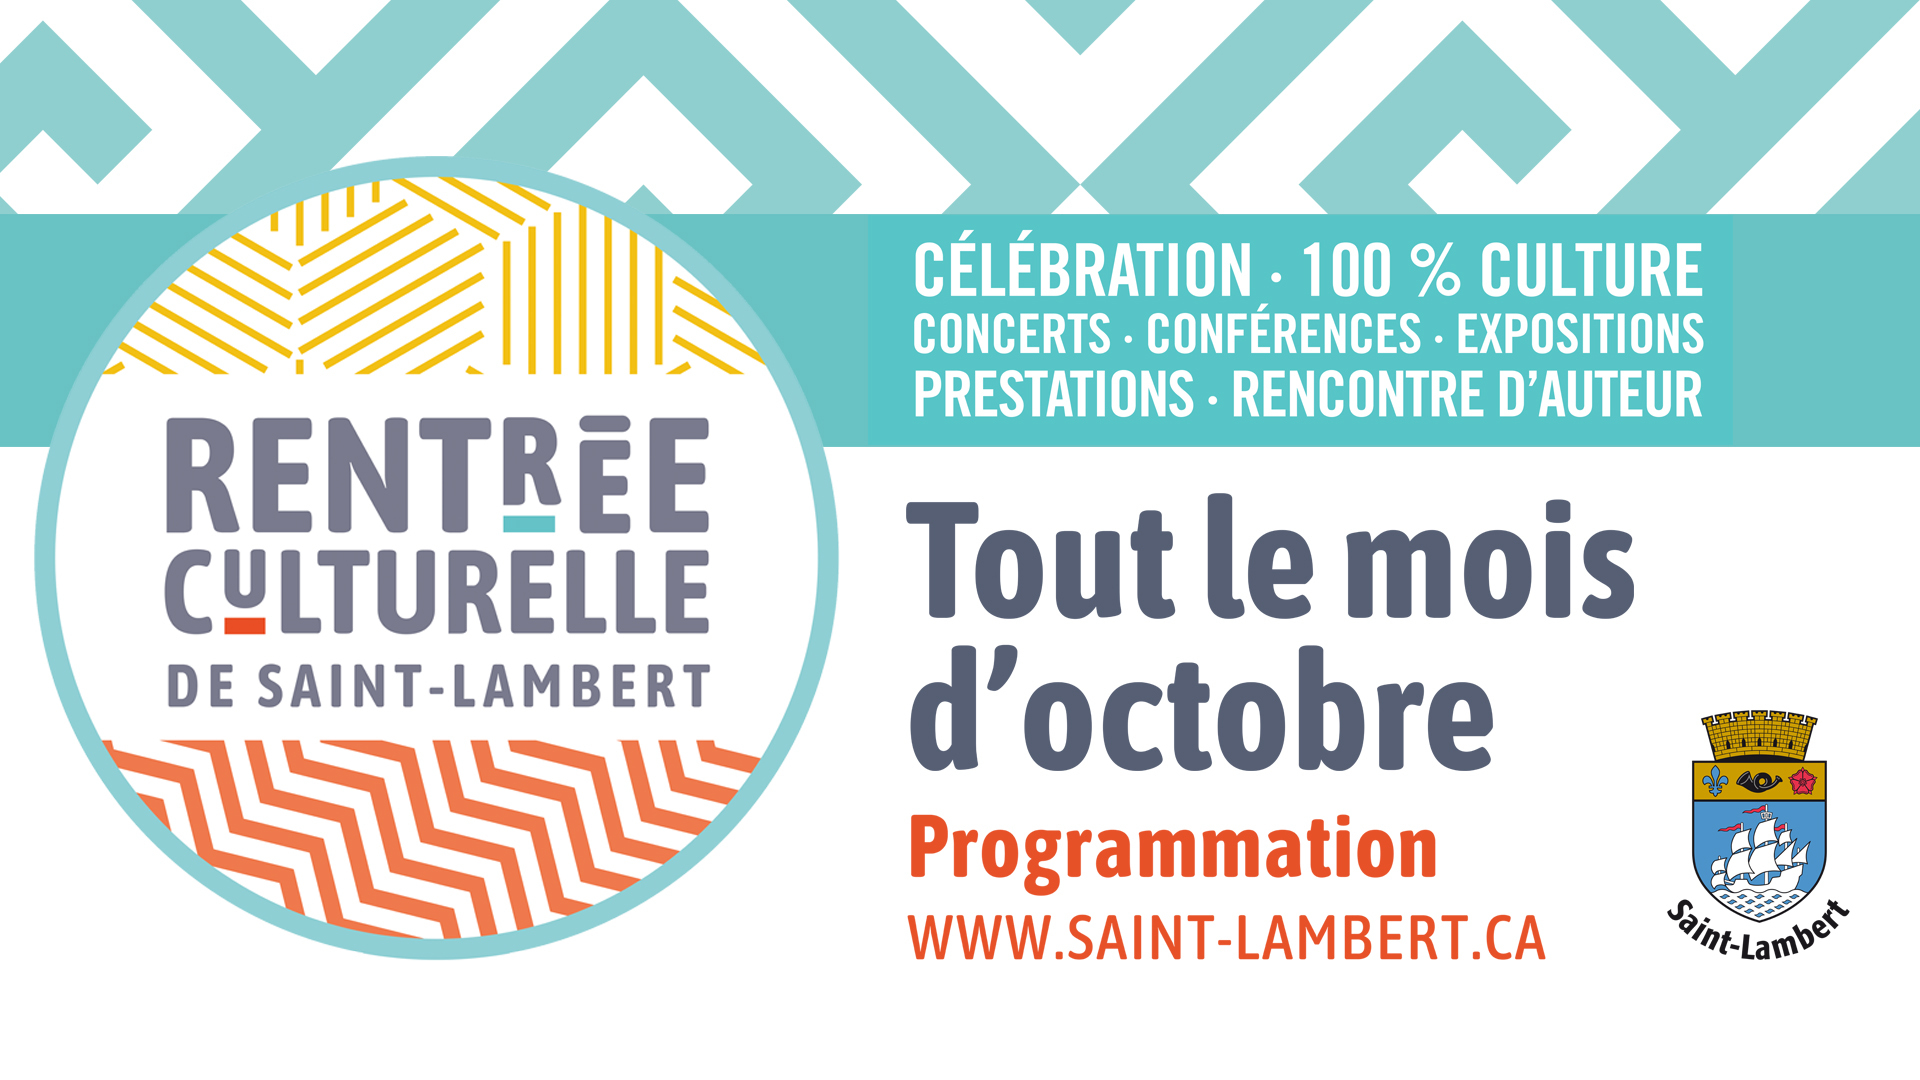 In October, culture takes place of pride in Saint-Lambert with the 3rd edition of the Rentrée culturelle!